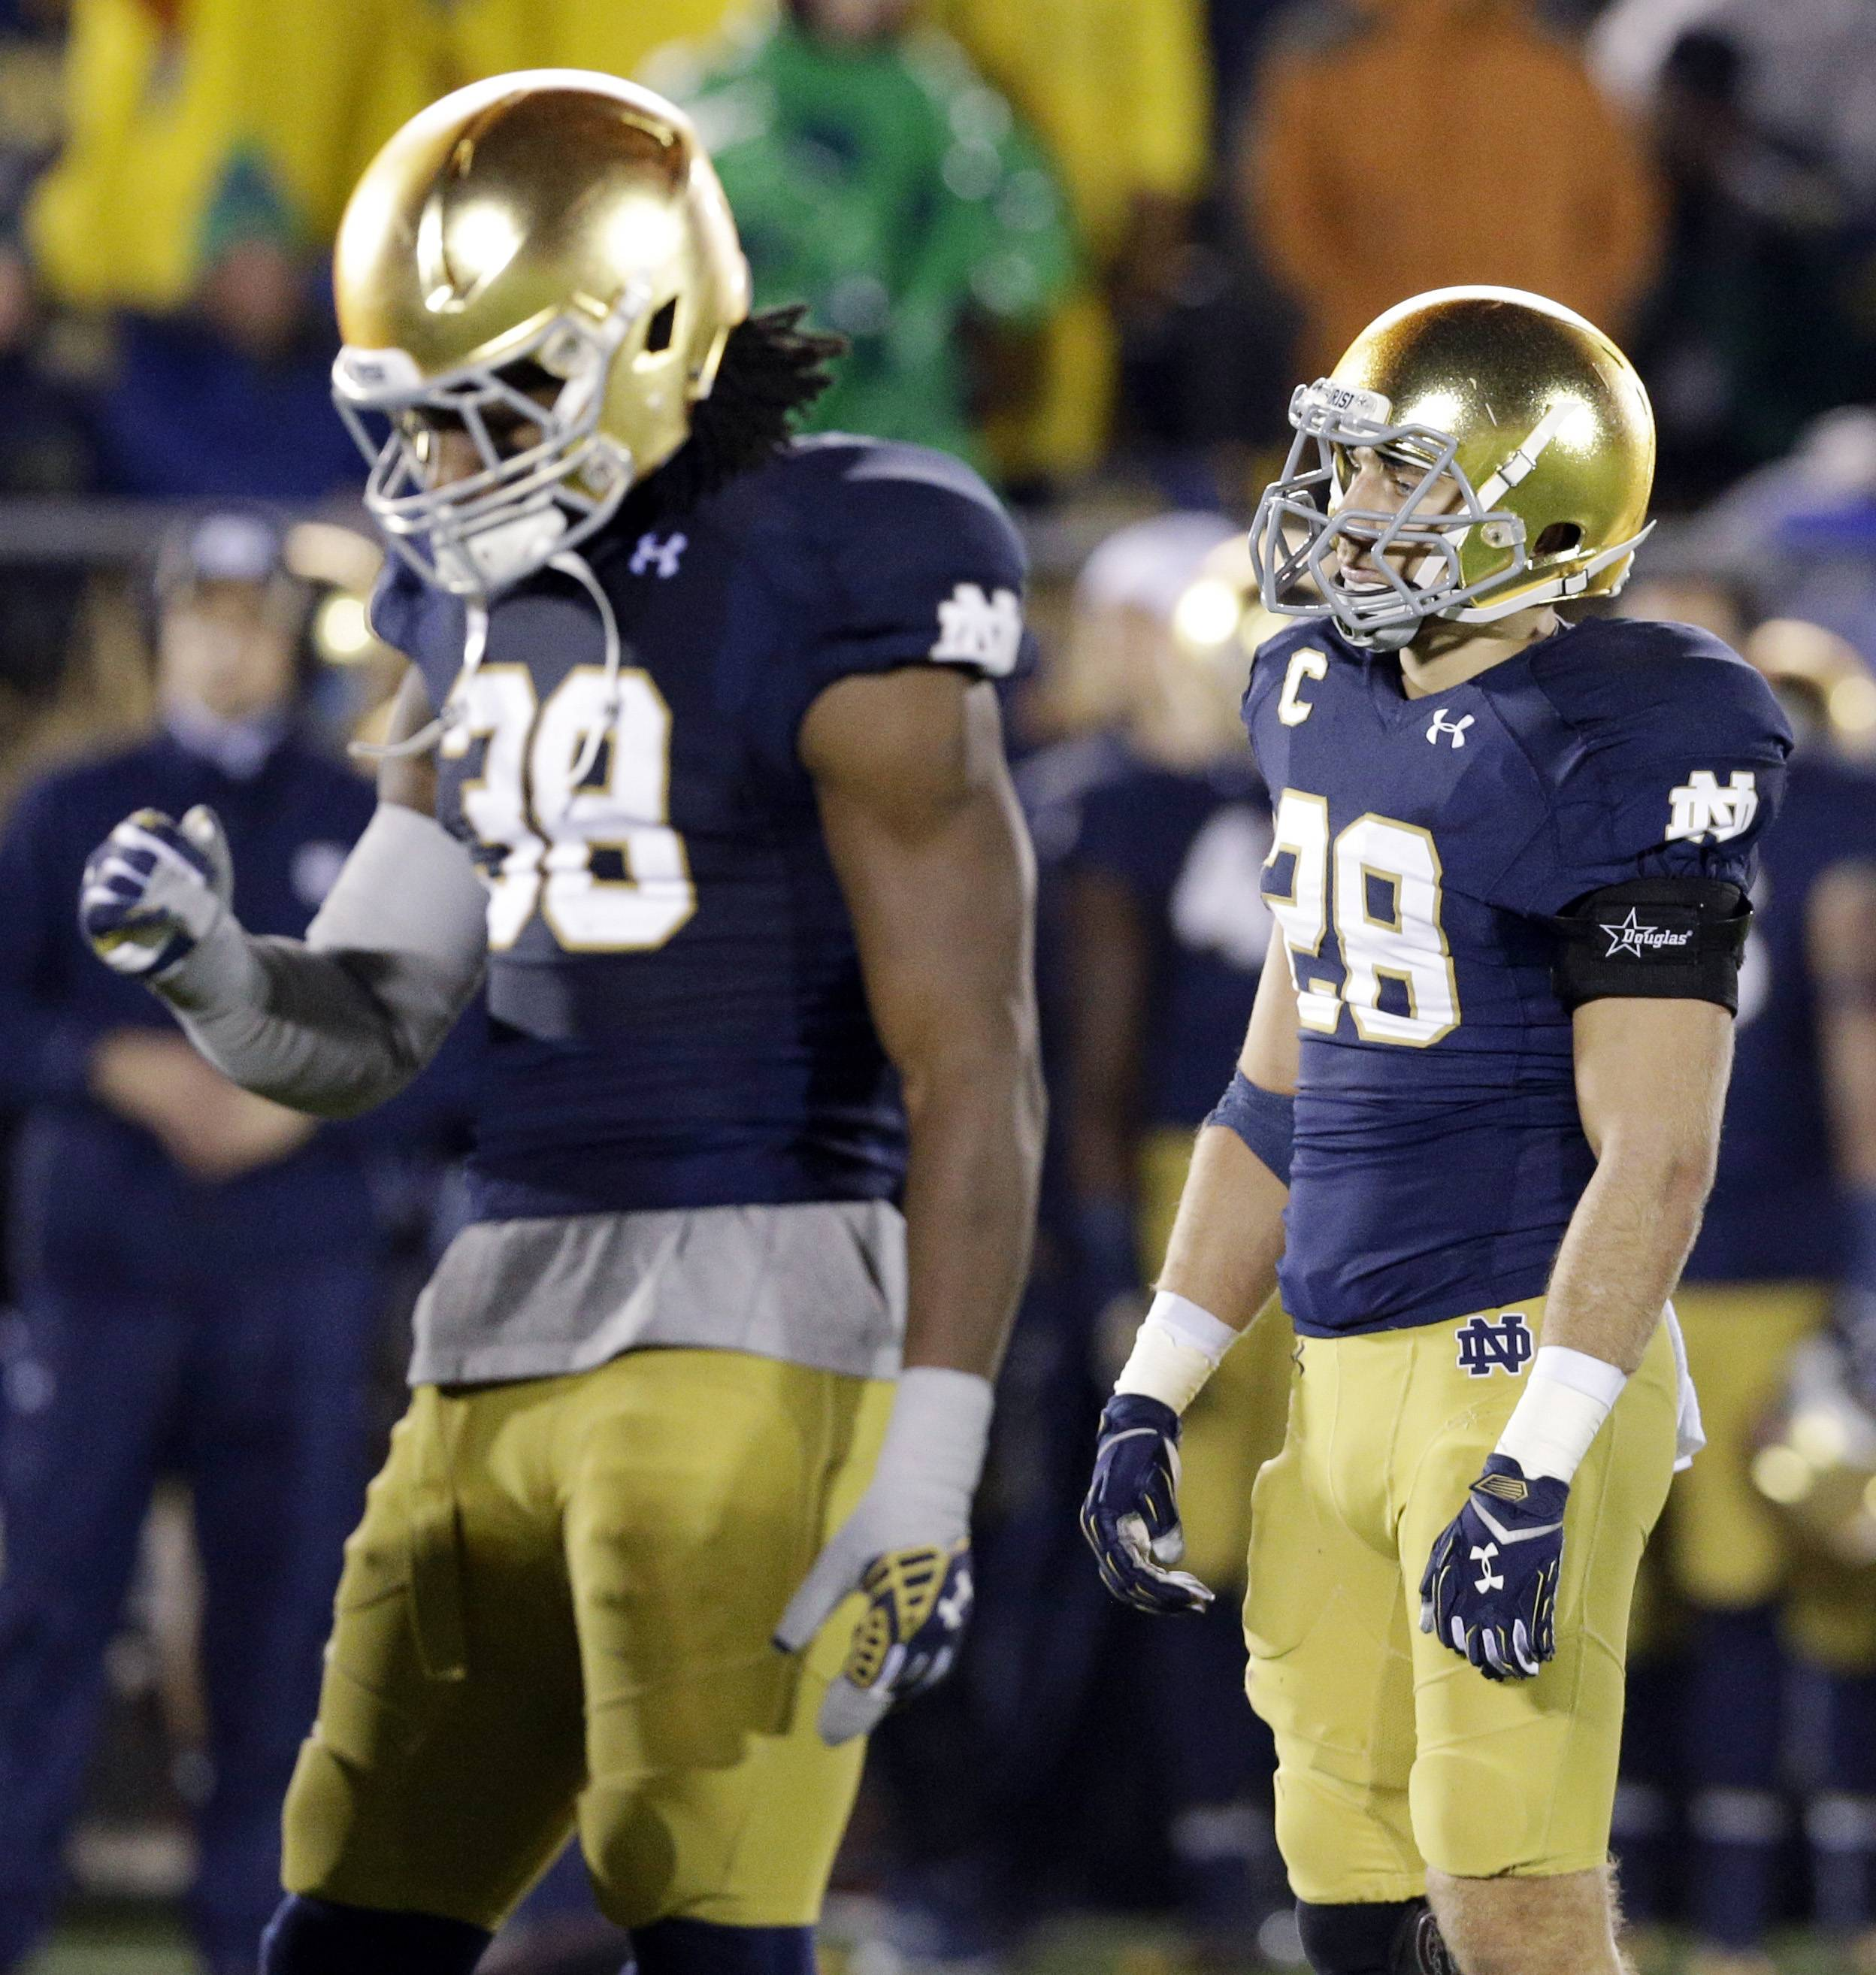 Notre Dame safety Austin Collinsworth, right, and linebacker Joe Schmidt react to their 31-28 loss to Louisville on Saturday in South Bend, Ind.